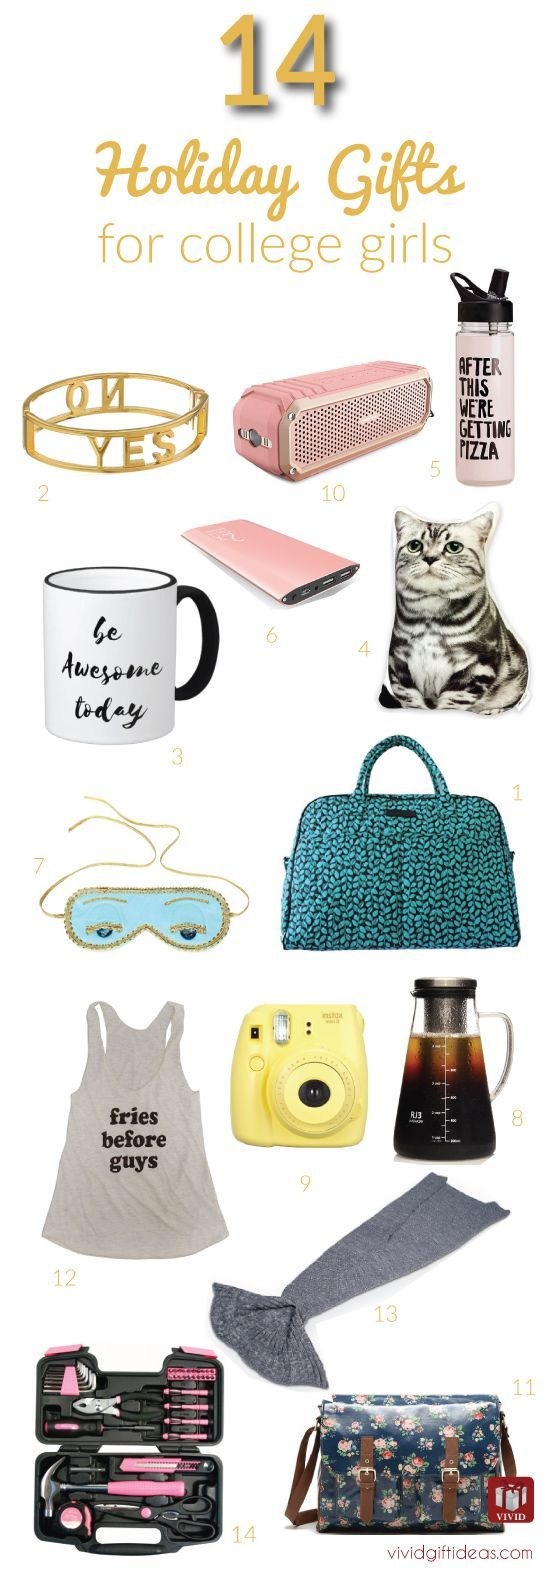 14 Great Christmas Gift Ideas for College Girls | College girls ...